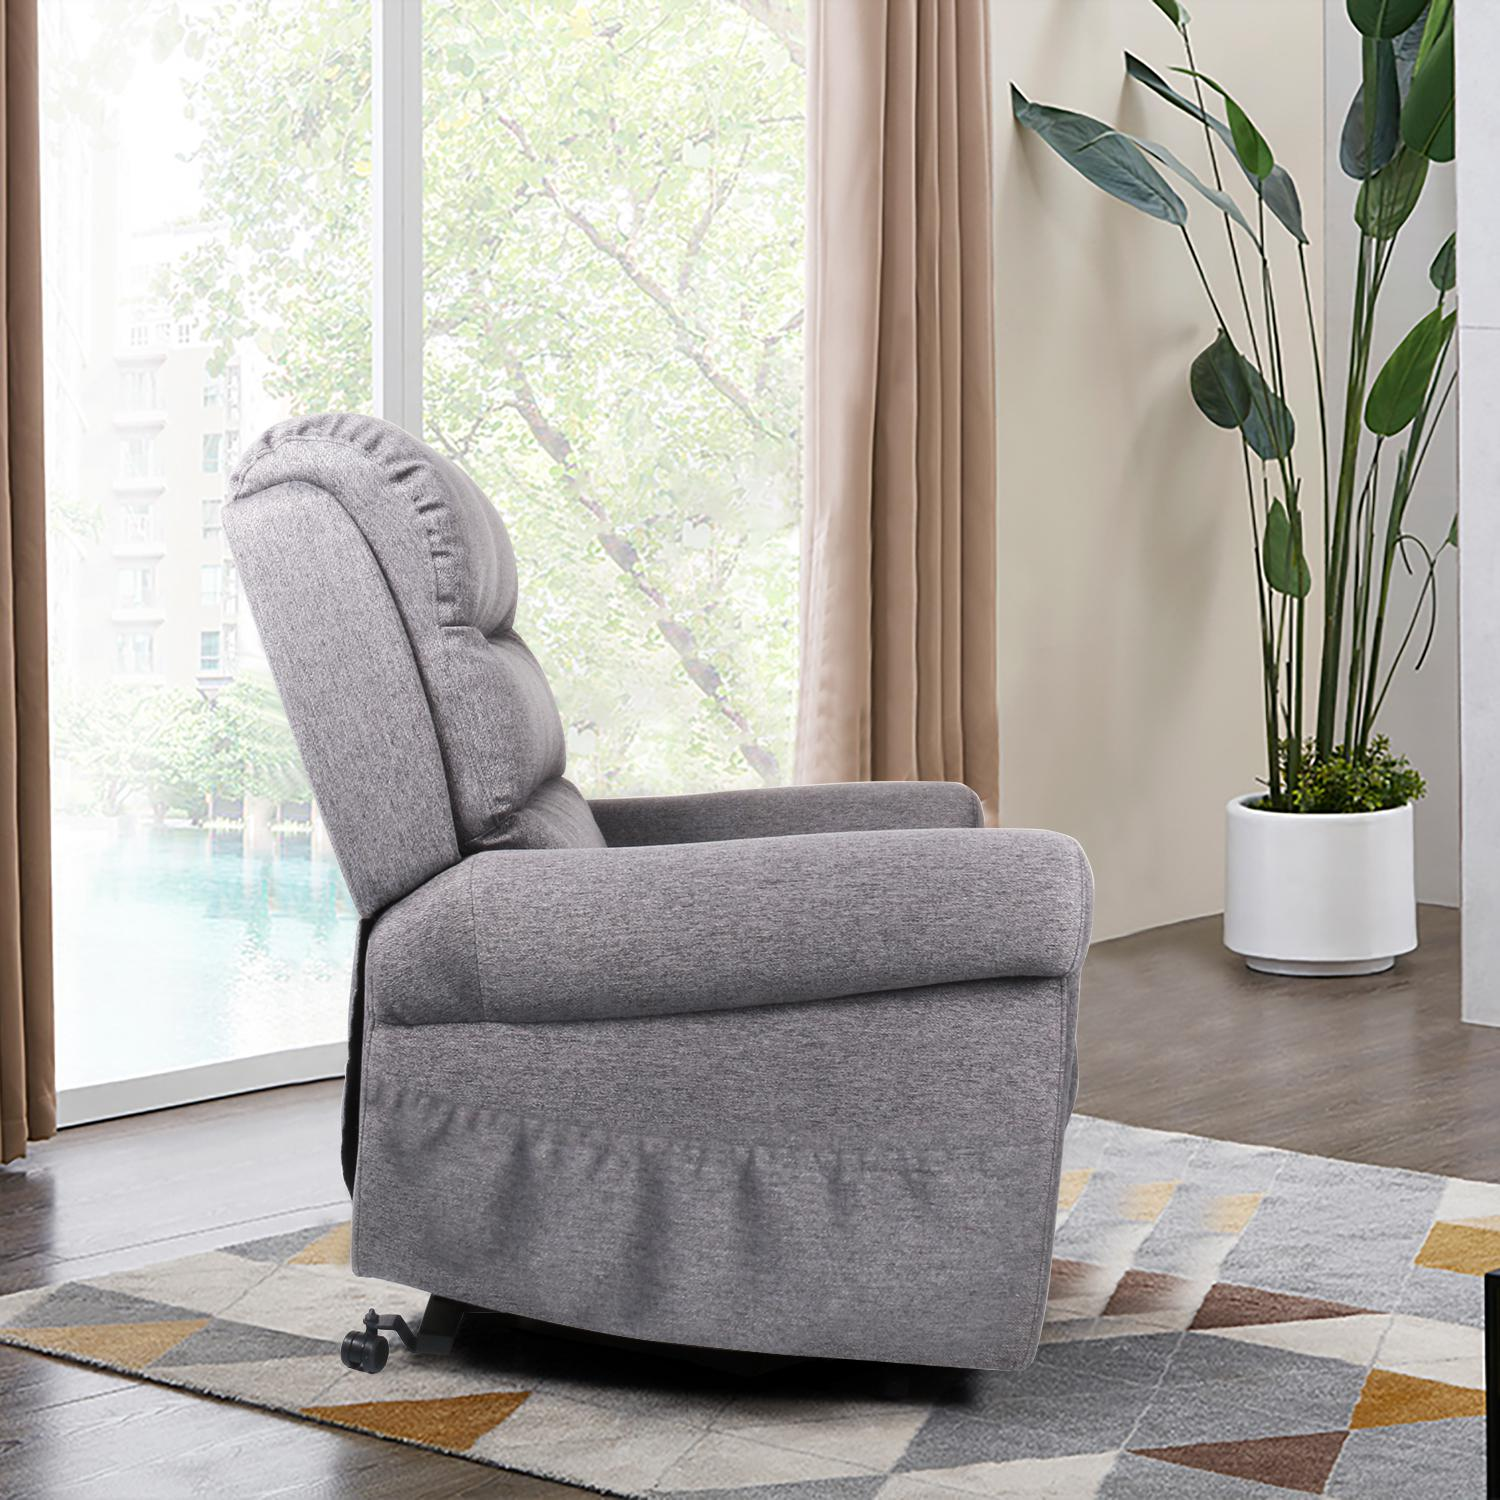 Smugdesk Fabric Recliner Chair, Electric Power Lift Sofa, Modern Single Sofa, Gray